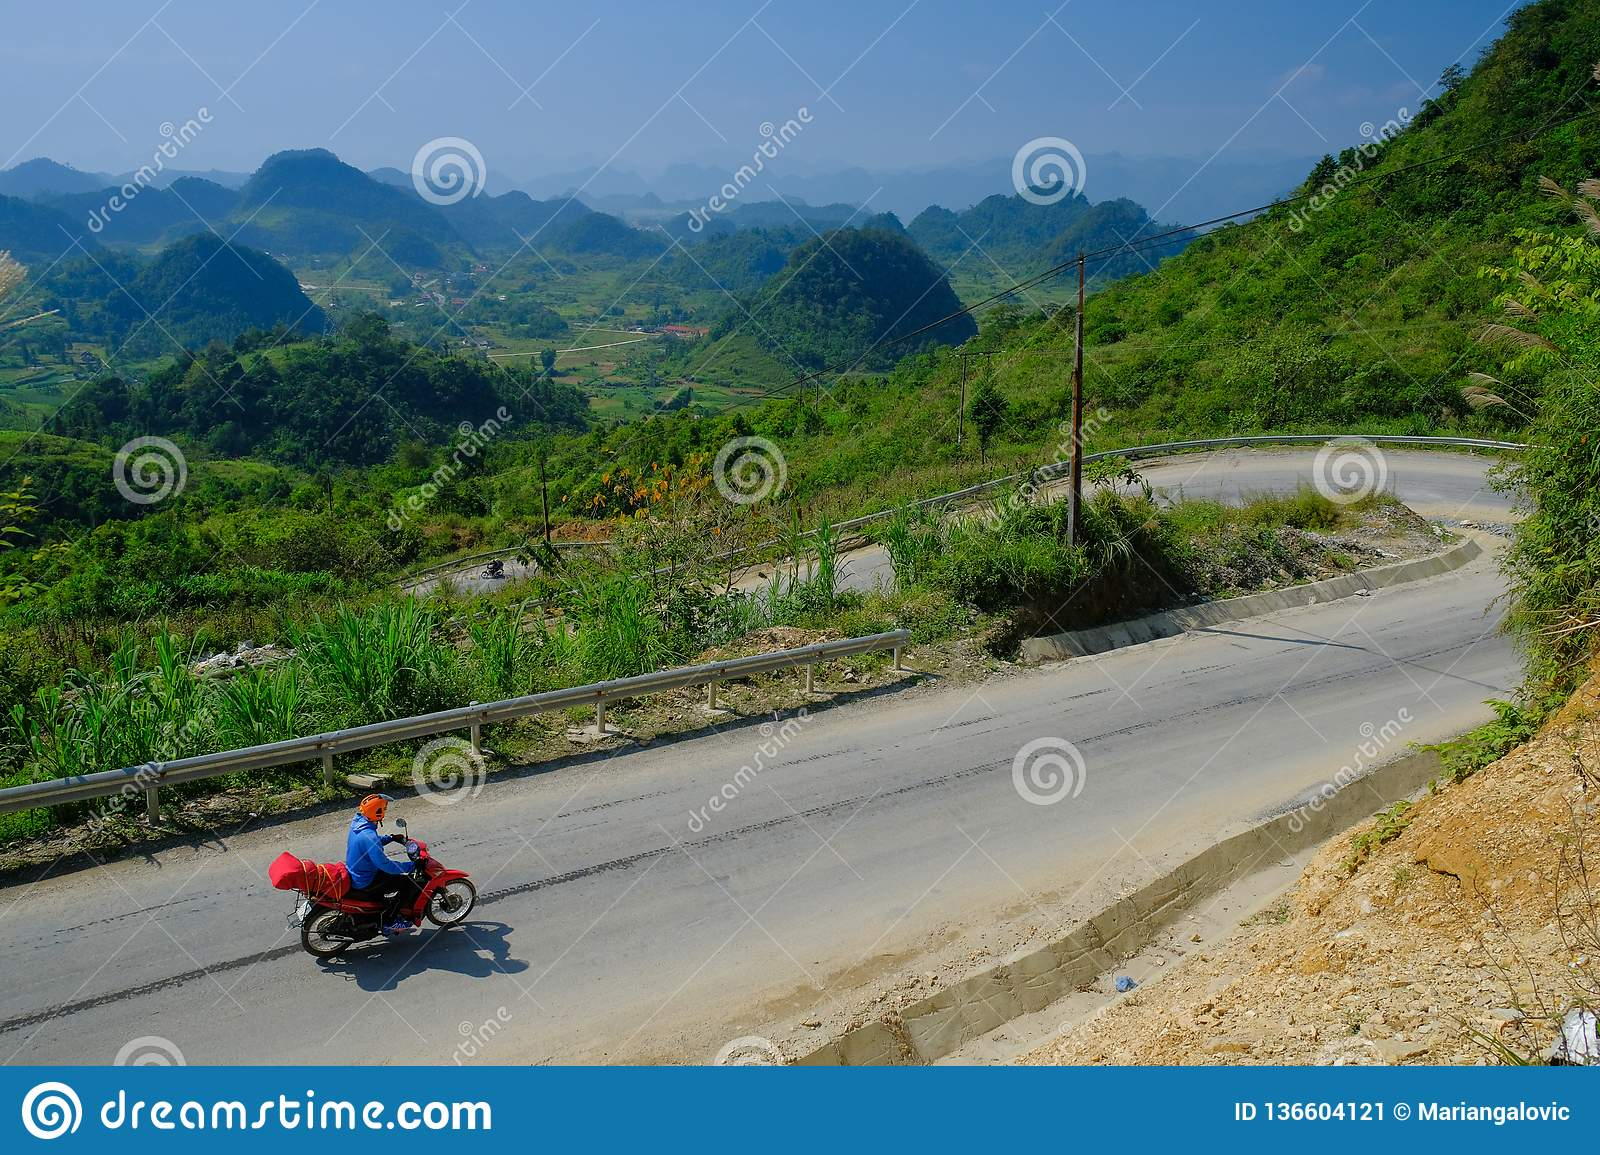 Ha Giang / Vietnam - 01/11/2017: Motorbiking backpackers on winding roads through valleys and karst mountain scenery in the North